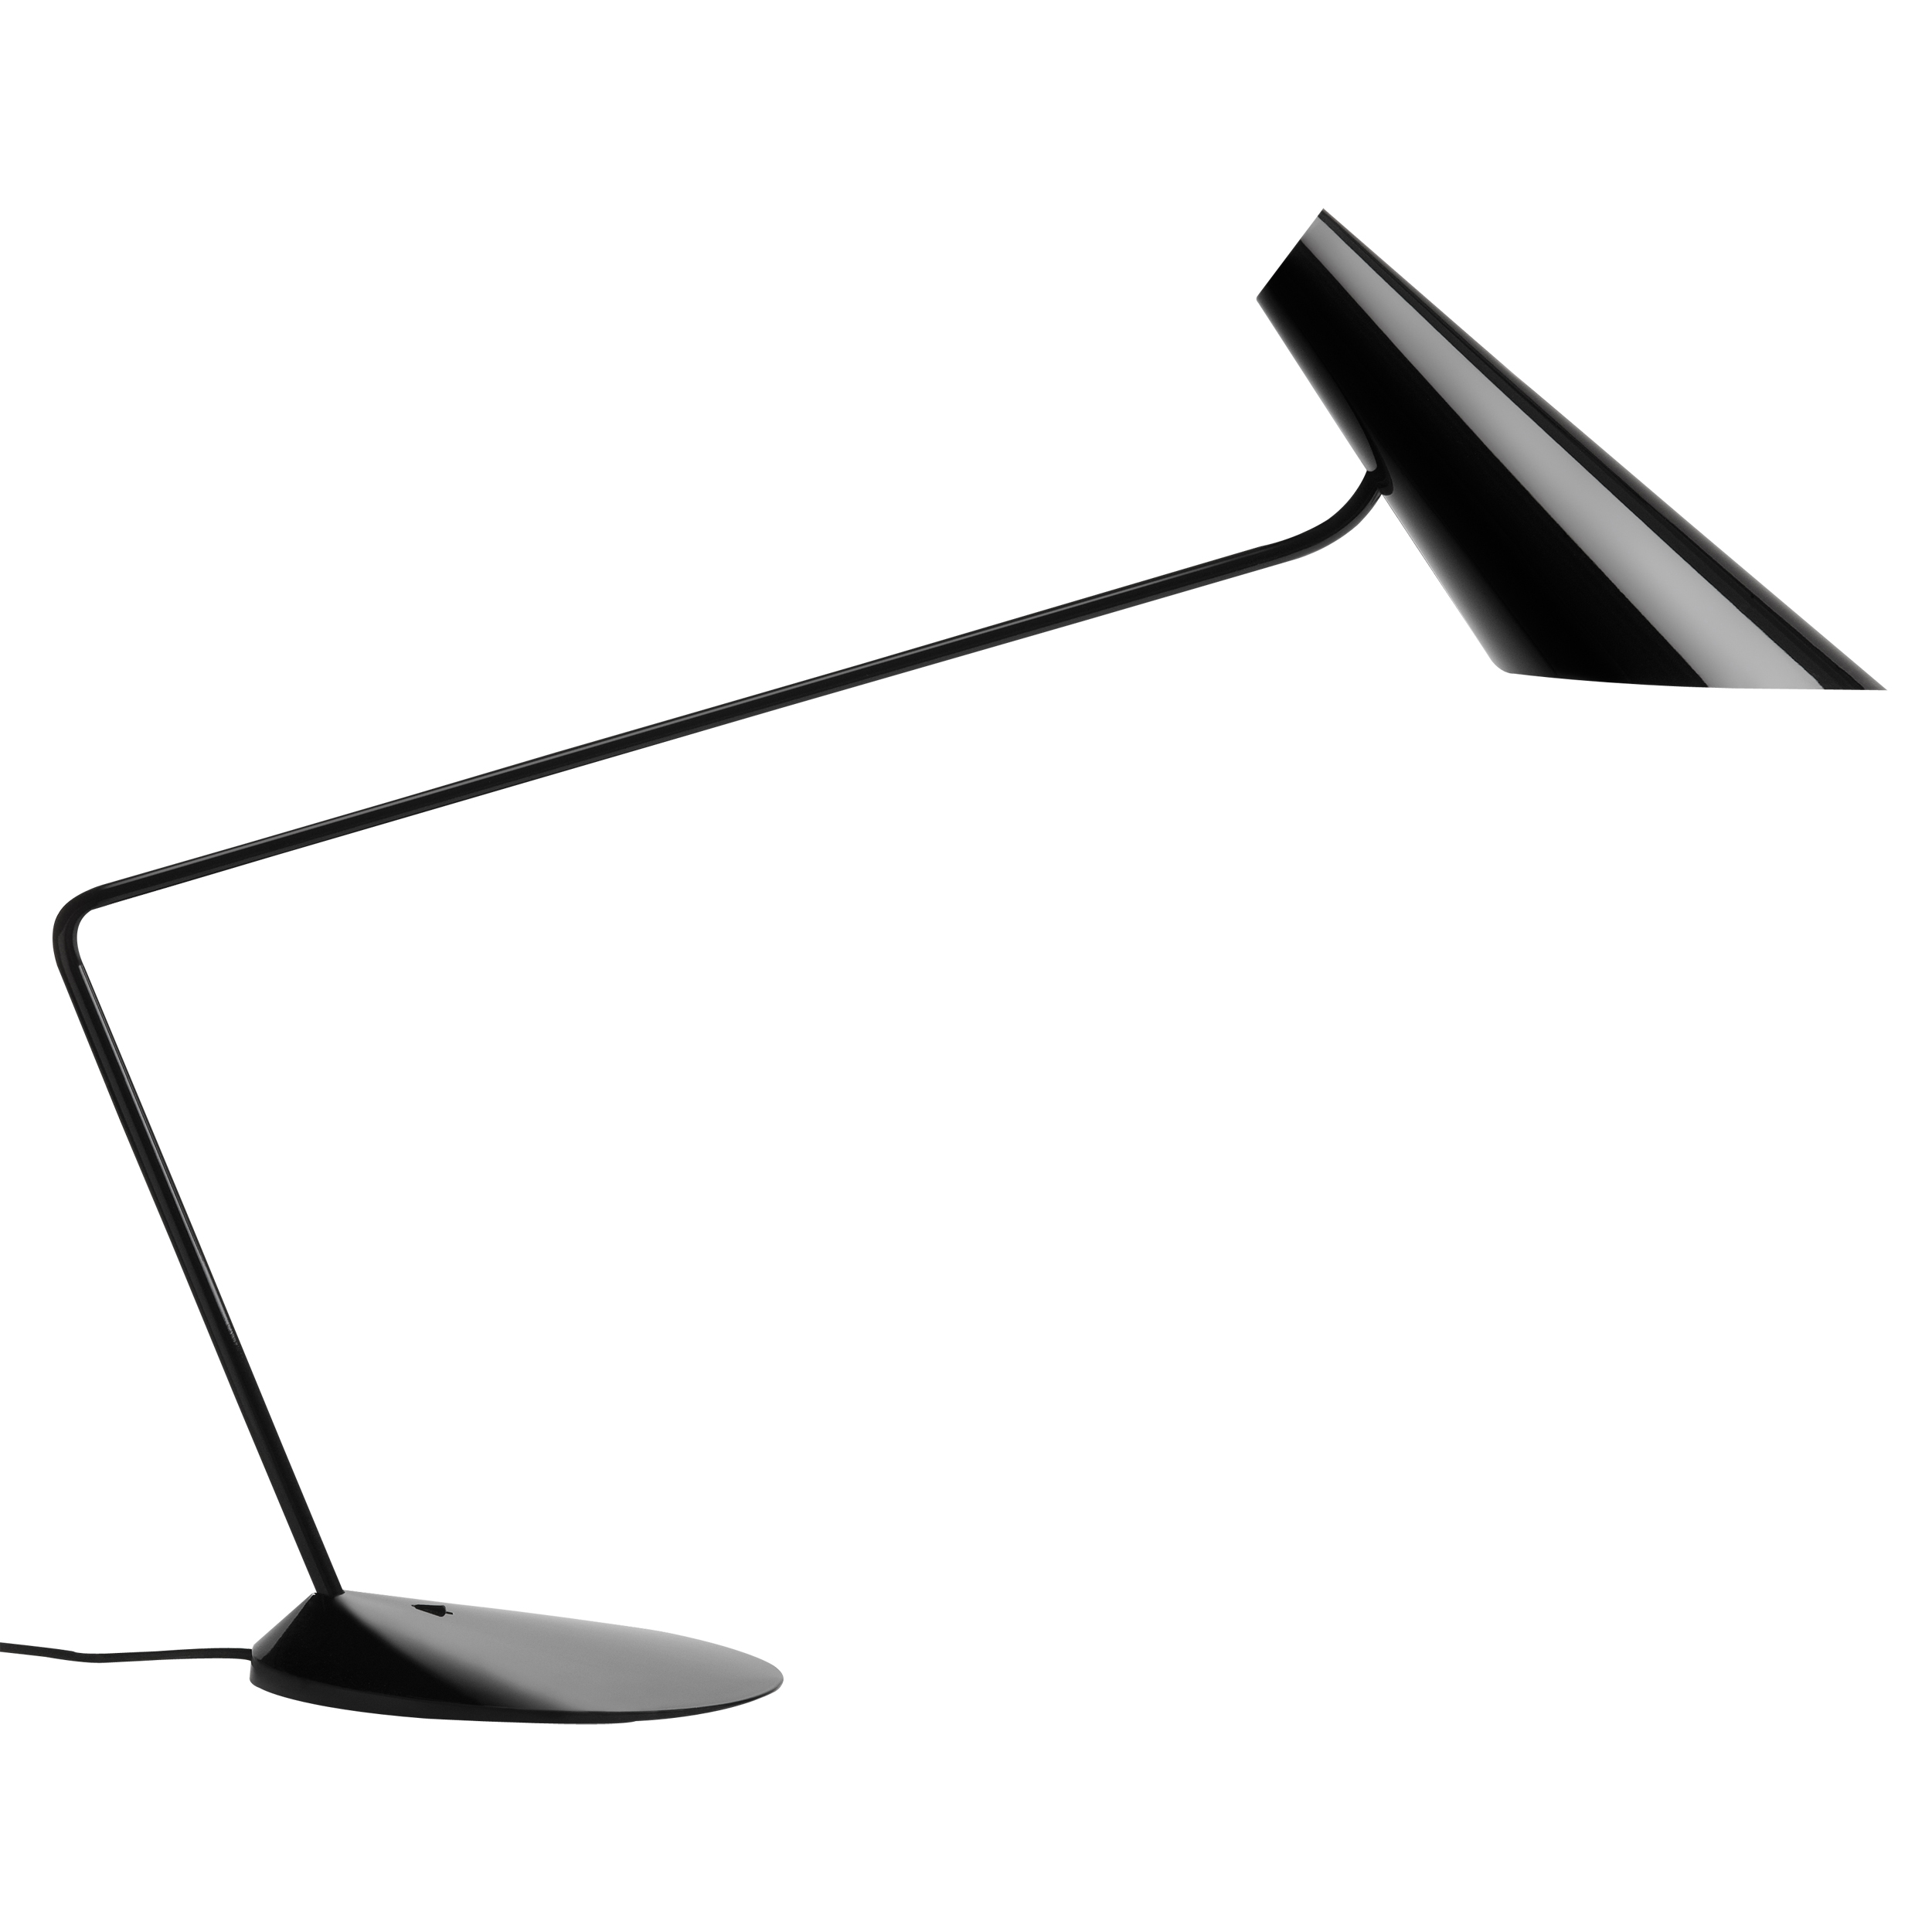 I.Cono Table Lamp 0705 by Vibia